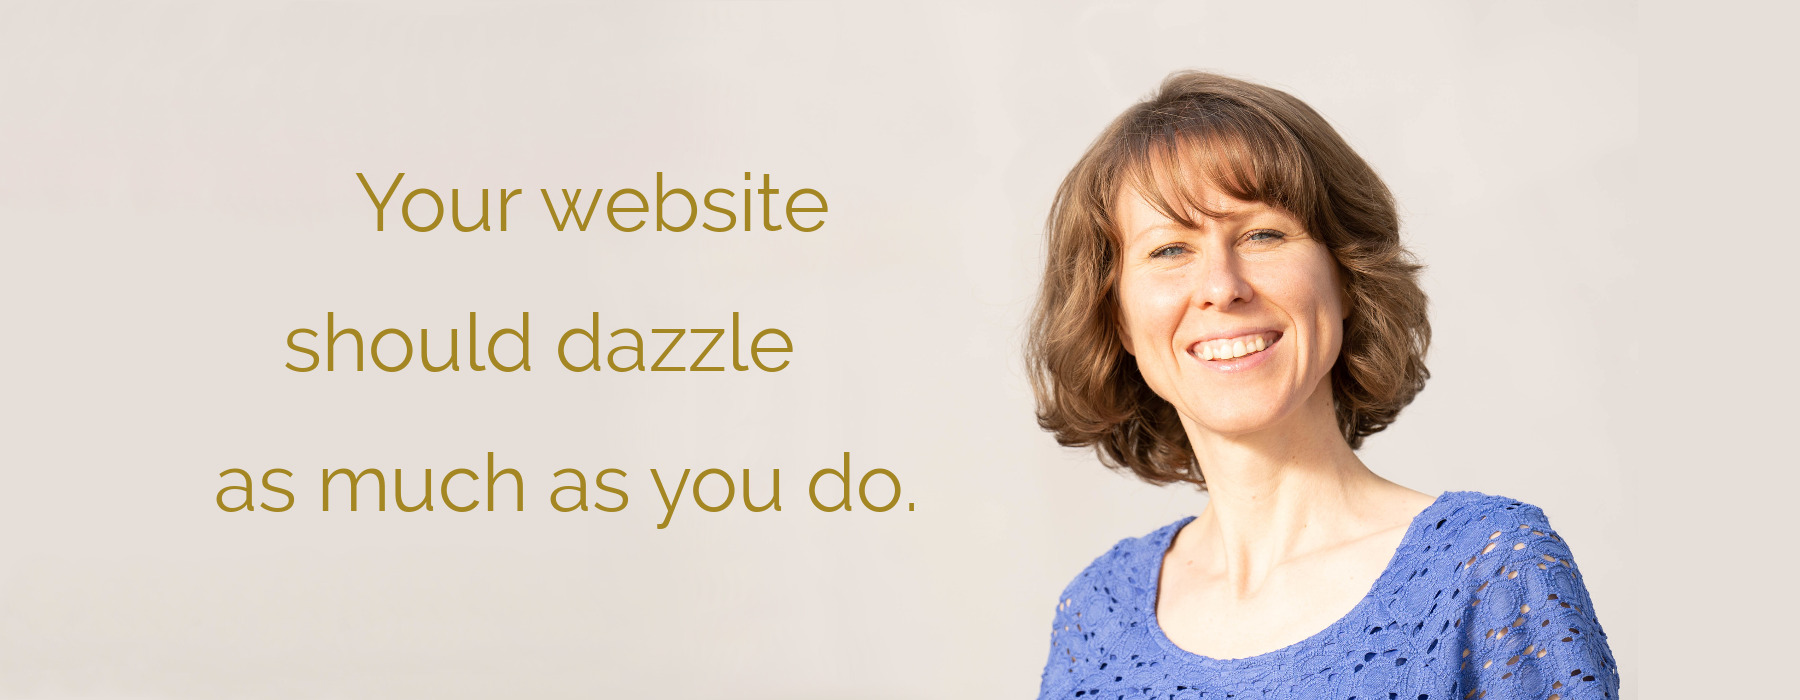 Your website should dazzle as much as you do.